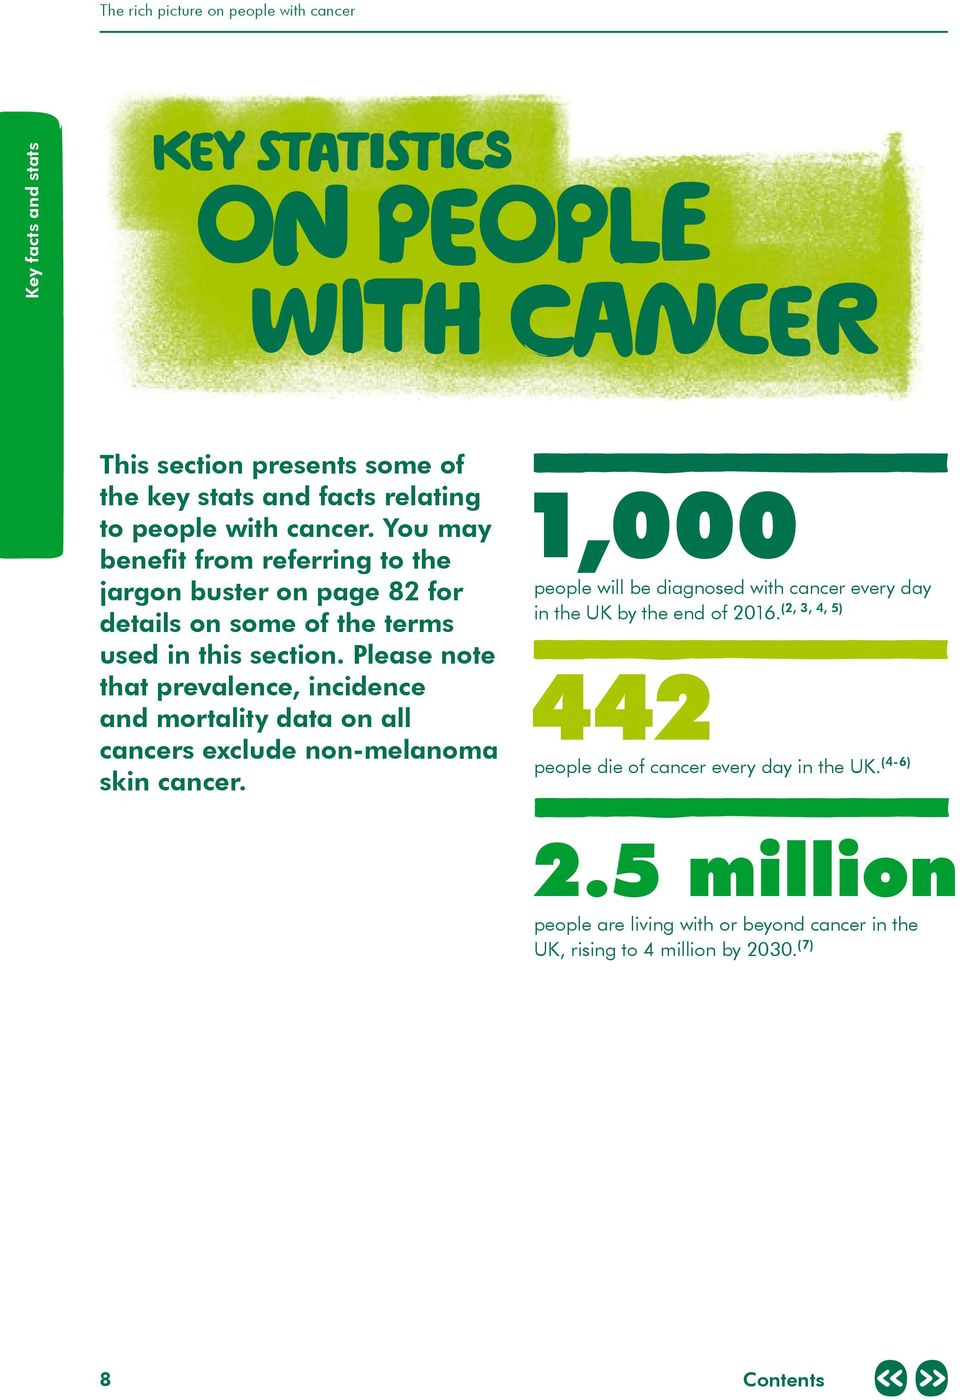 Please note that prevalence, incidence and mortality data on all cancers exclude non-melanoma skin cancer.